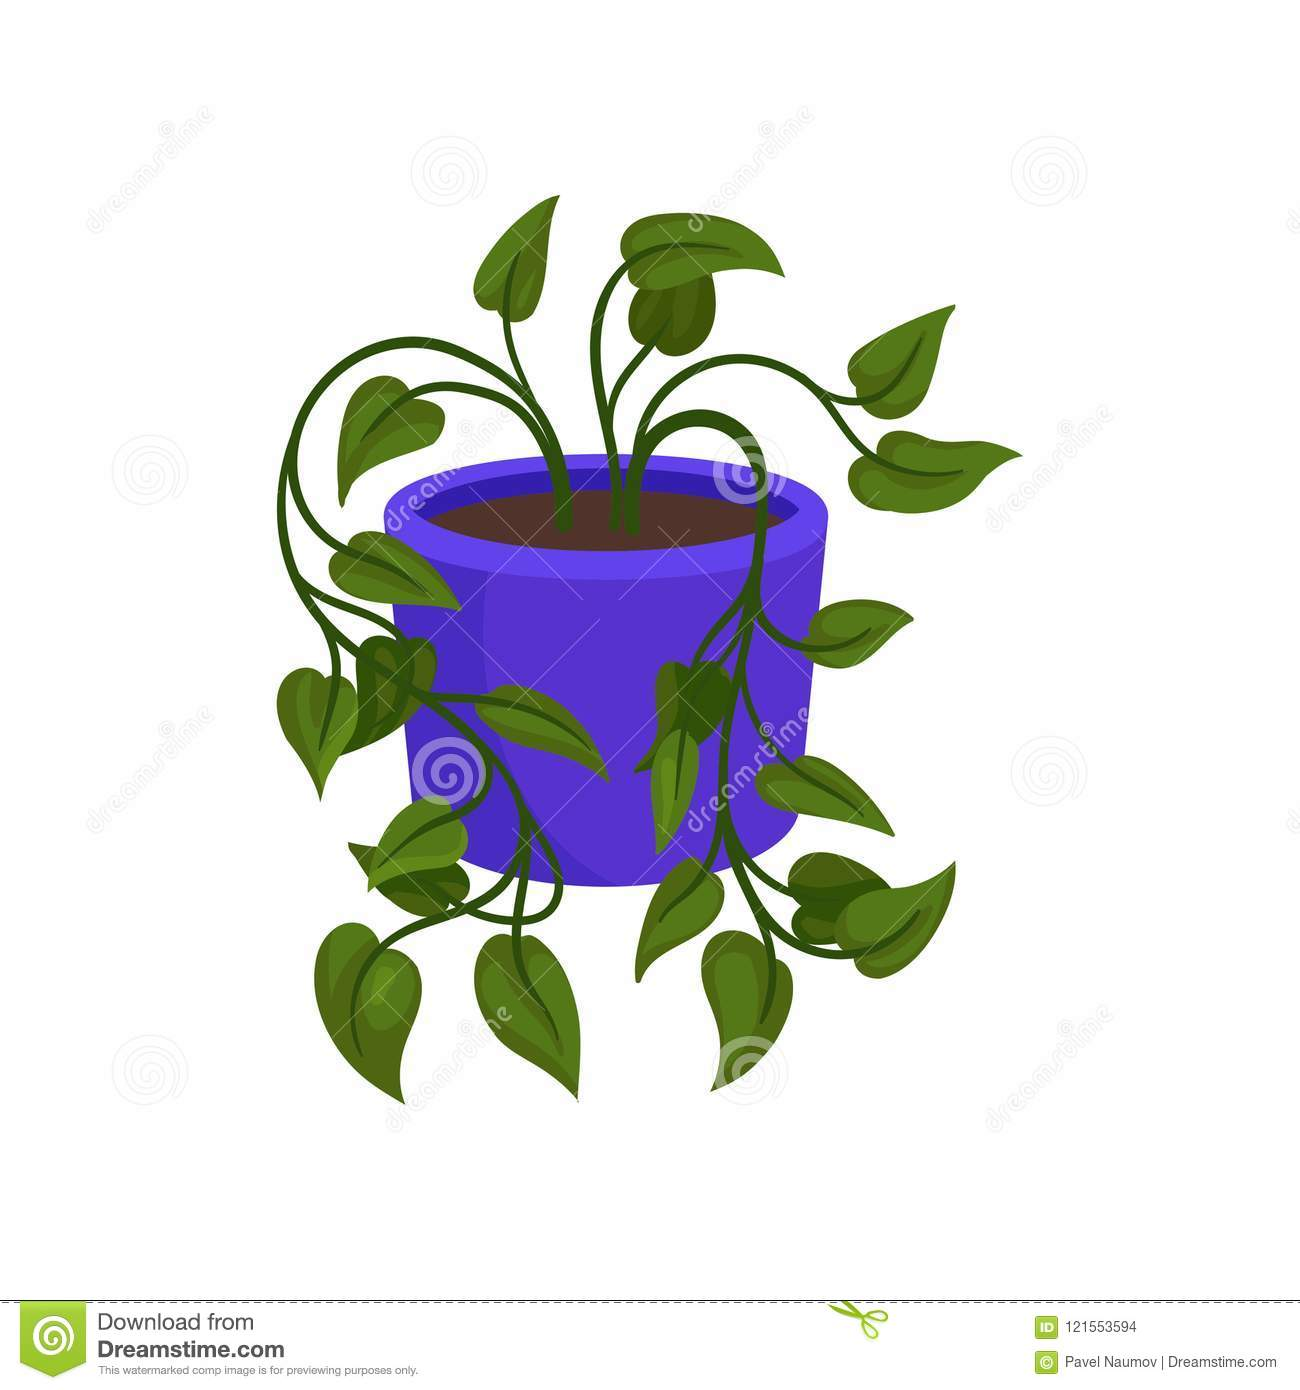 Indoor Philodendron Plant With Small Green Leaves Decorative Houseplant In Purple Ceramic Pot Flat Vector Icon Stock Vector Illustration Of House Background 121553594